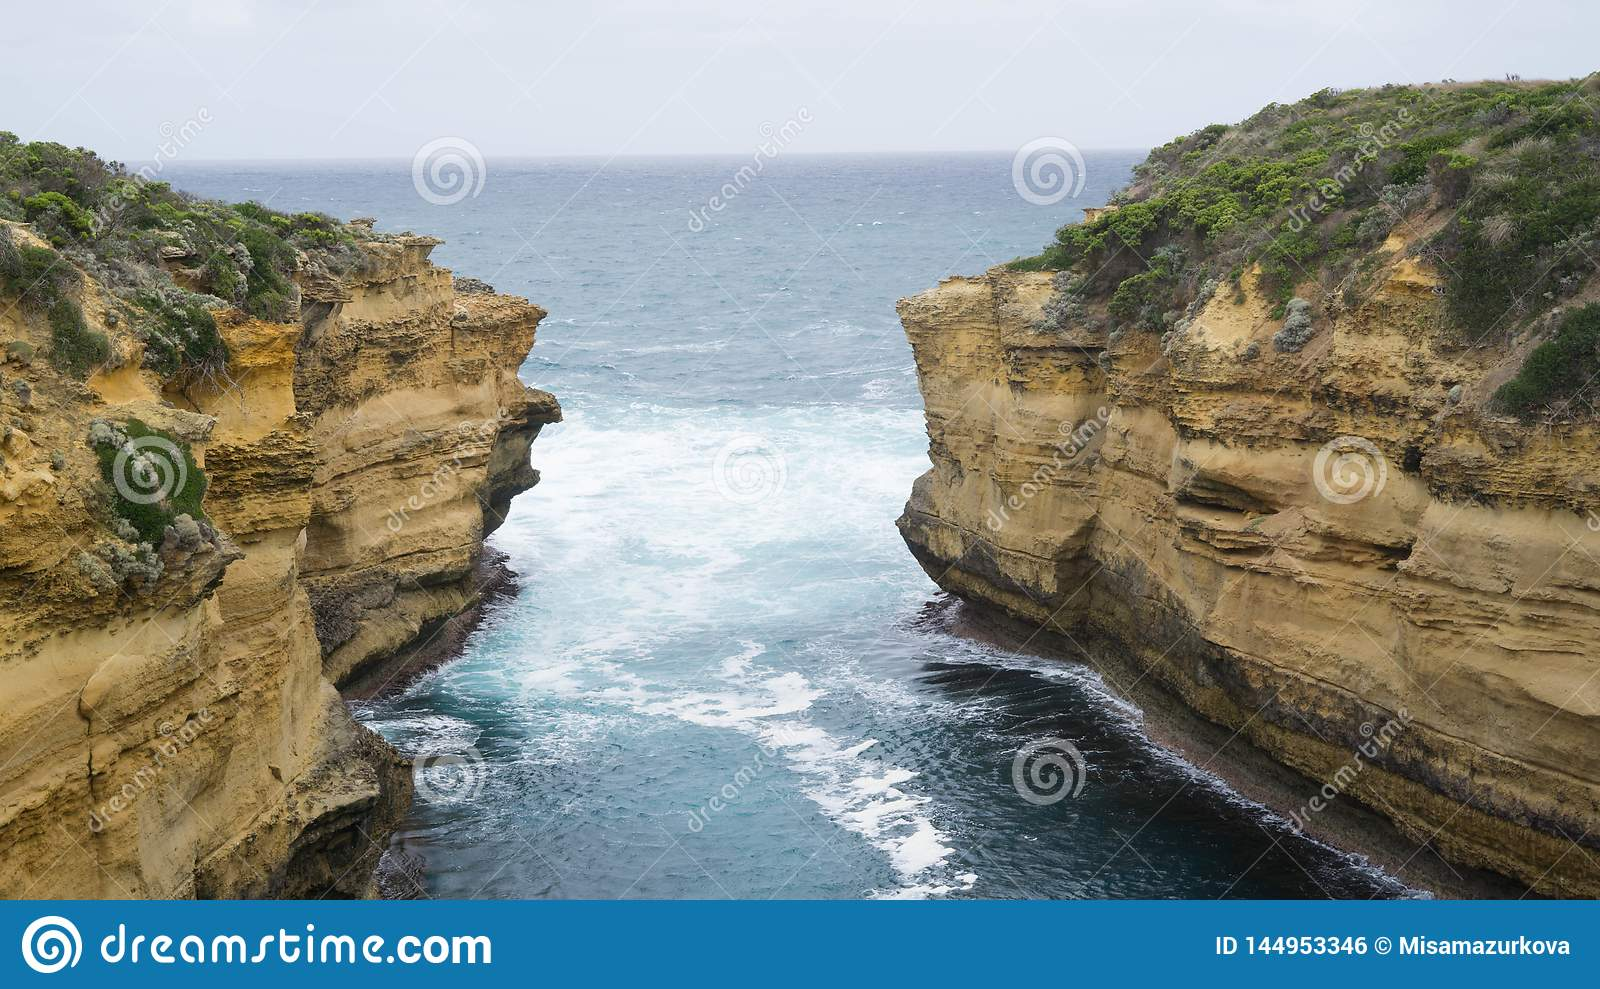 Loch Ard Gorge - one of many rock formations along The Great Ocean Road caused by water erosion, Australia